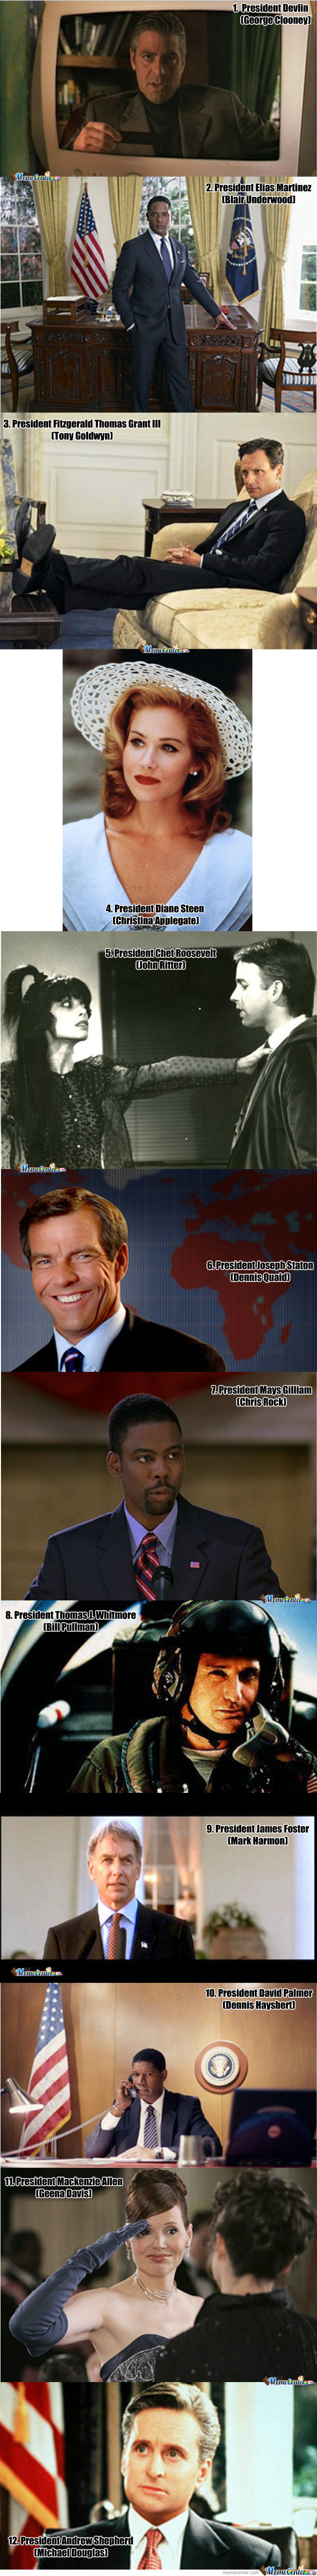 The 12 Hottest Fictional Presidents